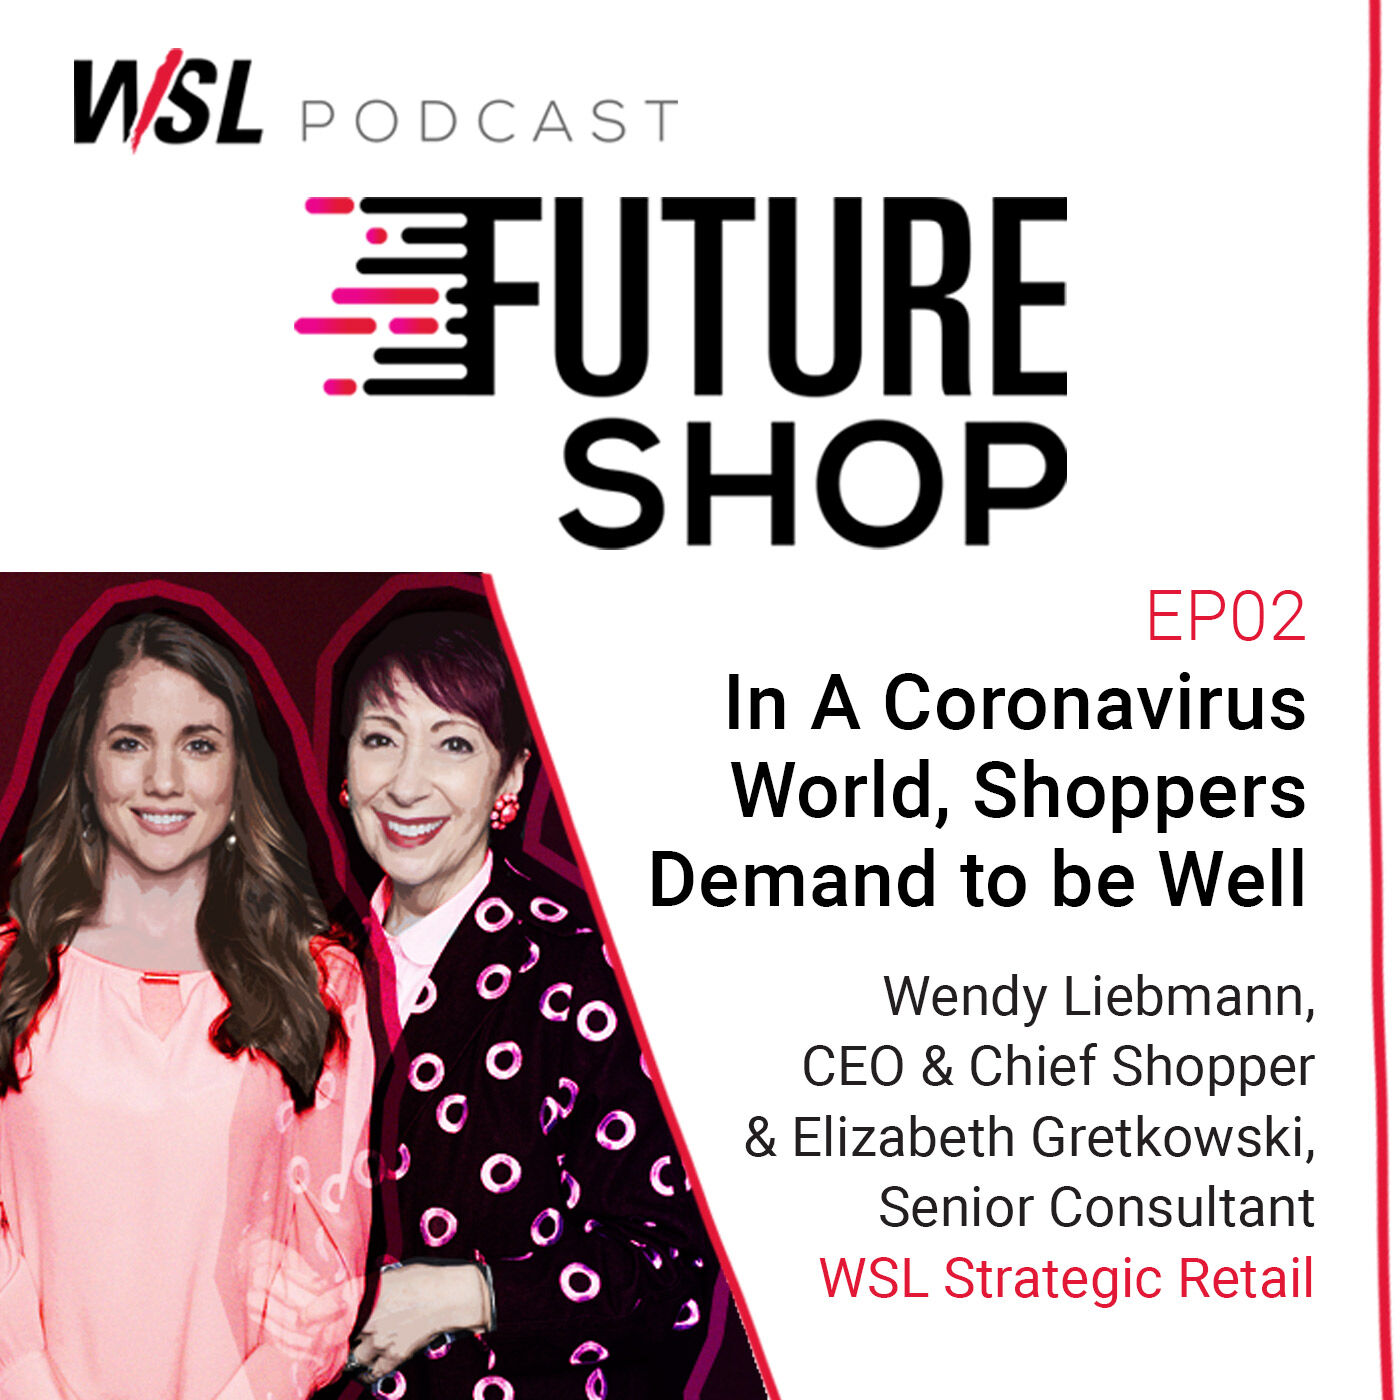 EP 02: In A Coronavirus World, Shoppers Demand to be Well